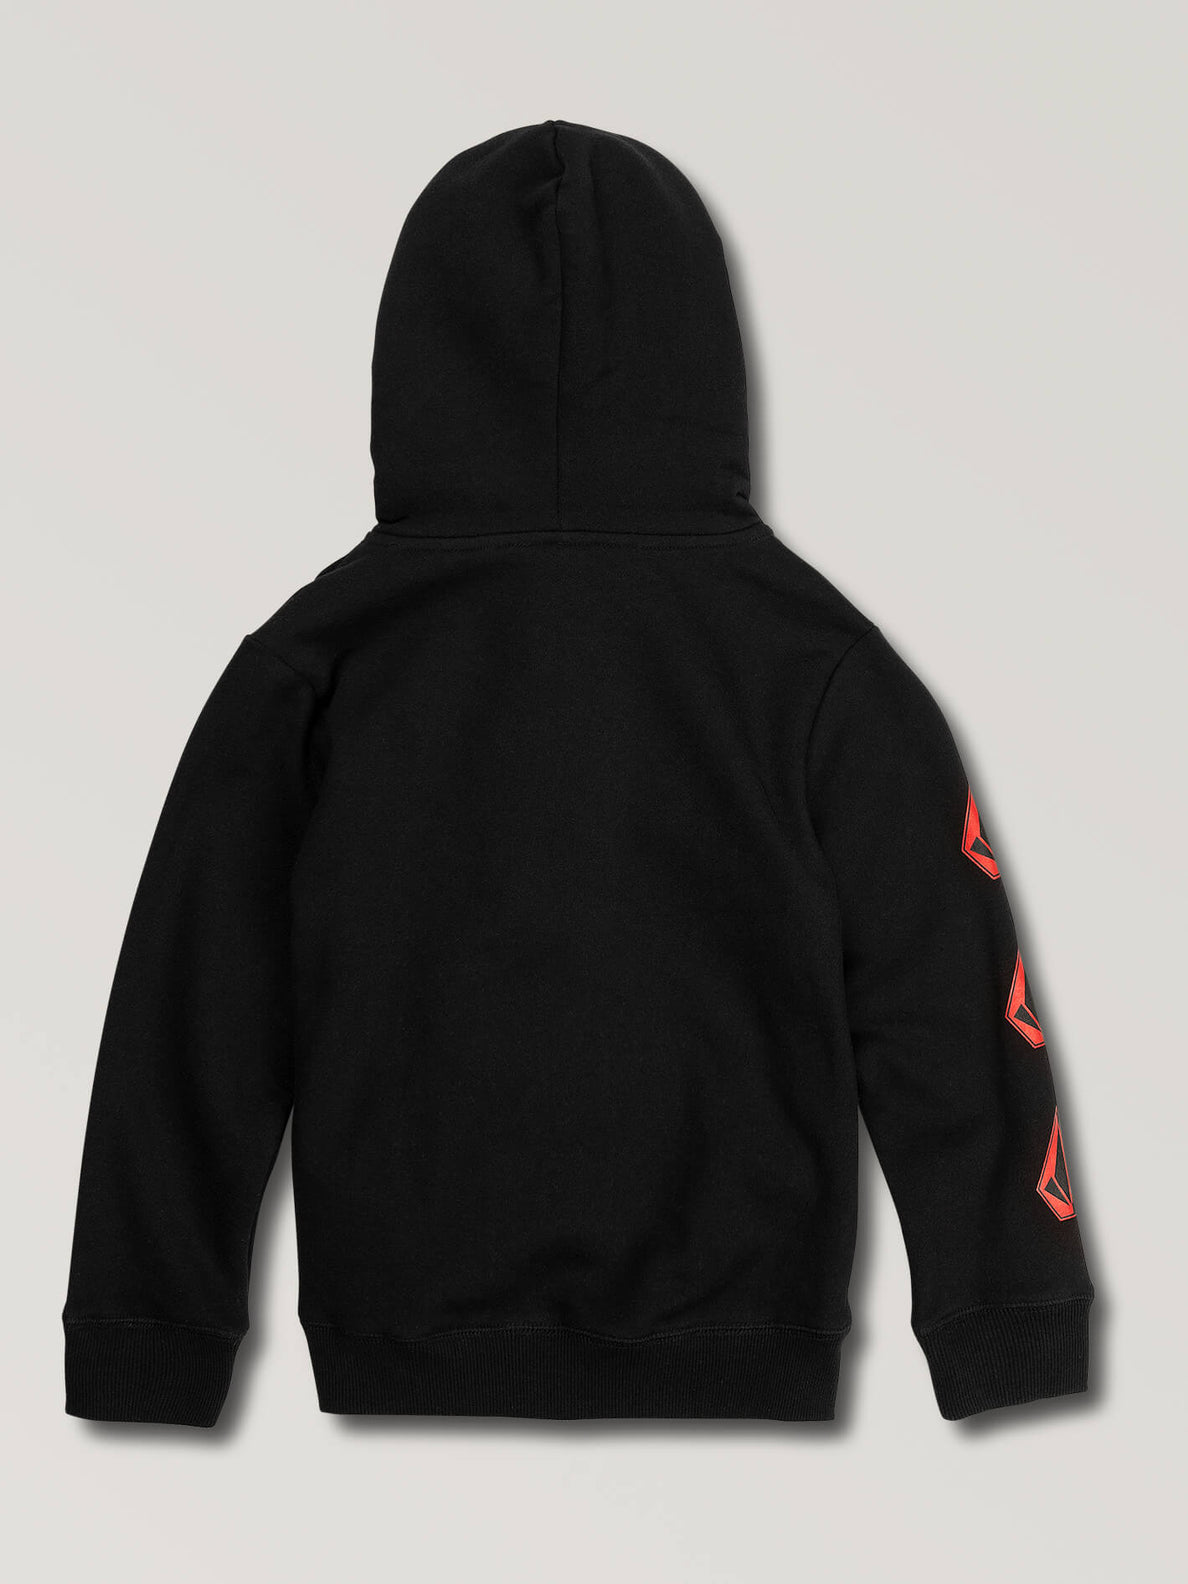 Little Boys Deadly Stones Pullover Hoodie In Black Red, Back View